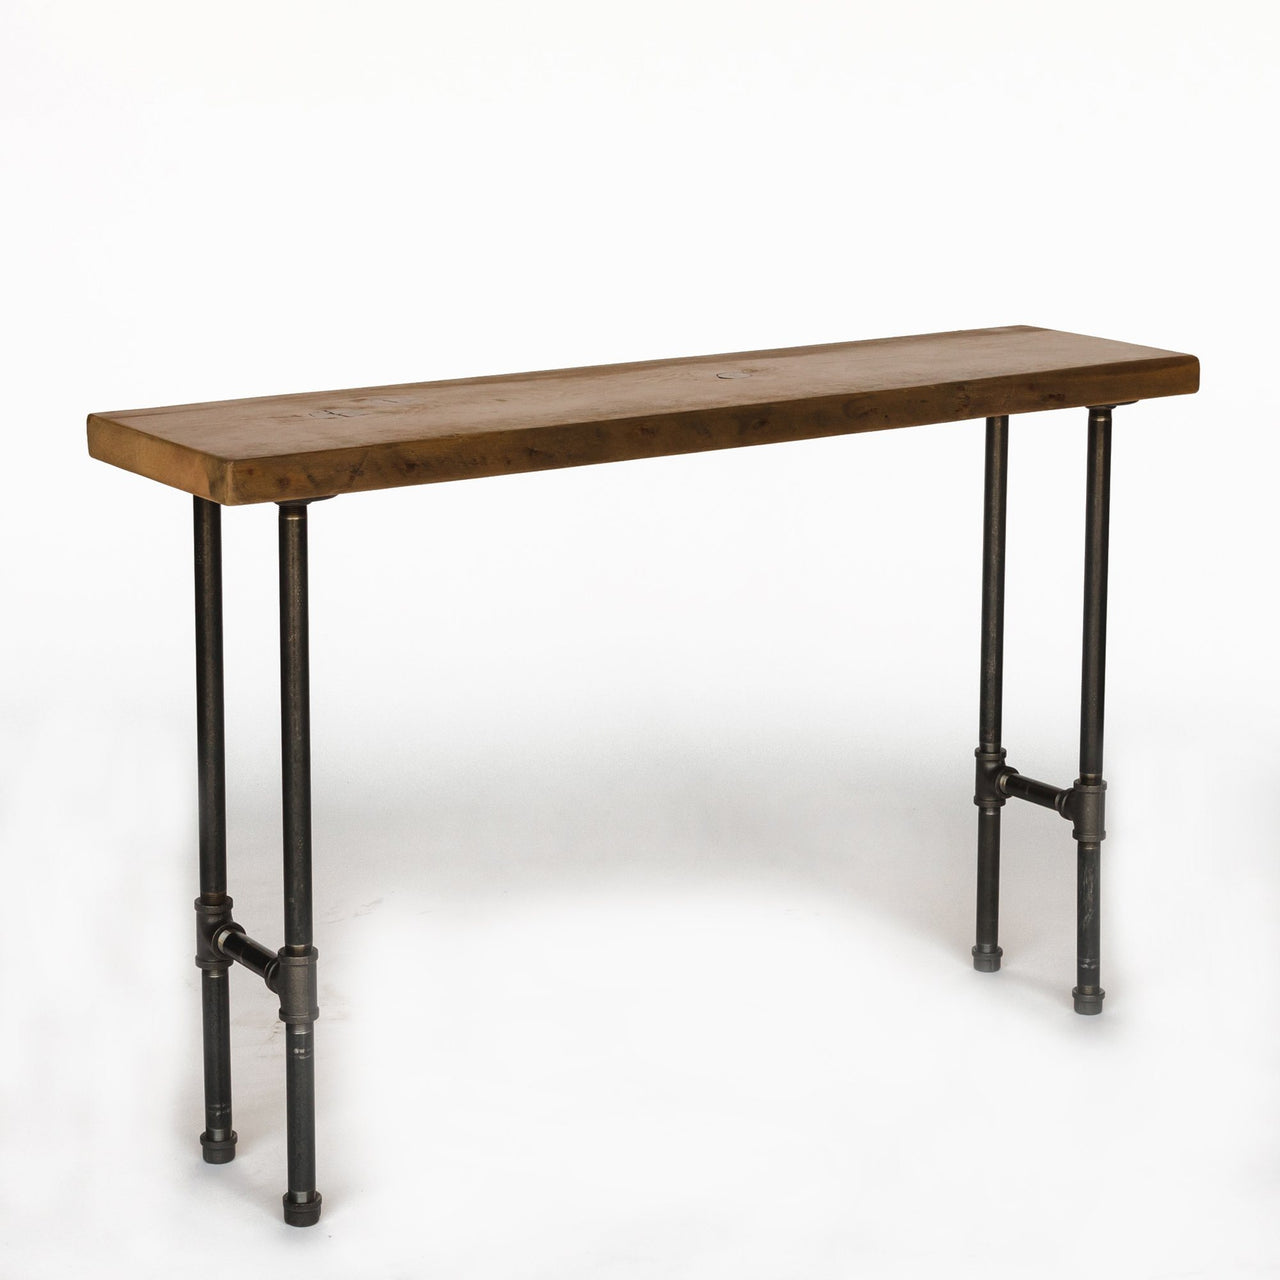 reclaimed wood console table Modern Industry Reclaimed Wood Console Table reclaimed wood console table